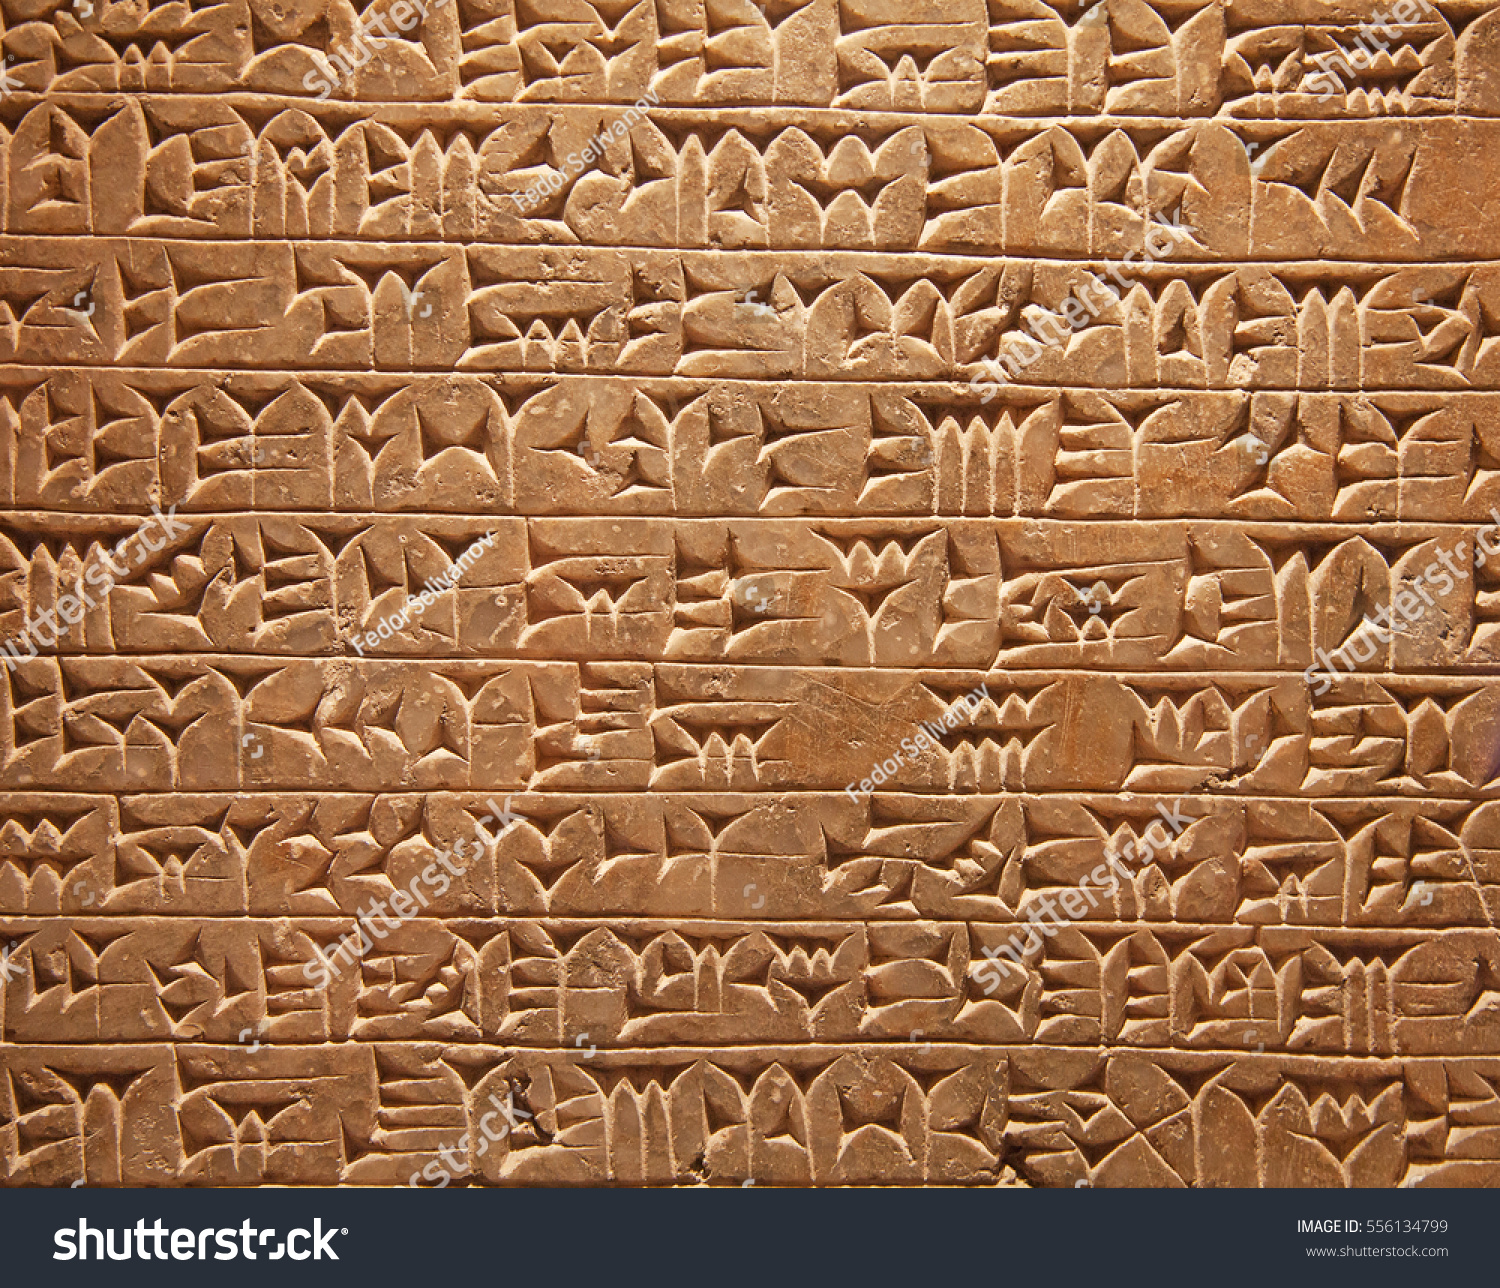 Ancient sumerian stone carving cuneiform scripting stock